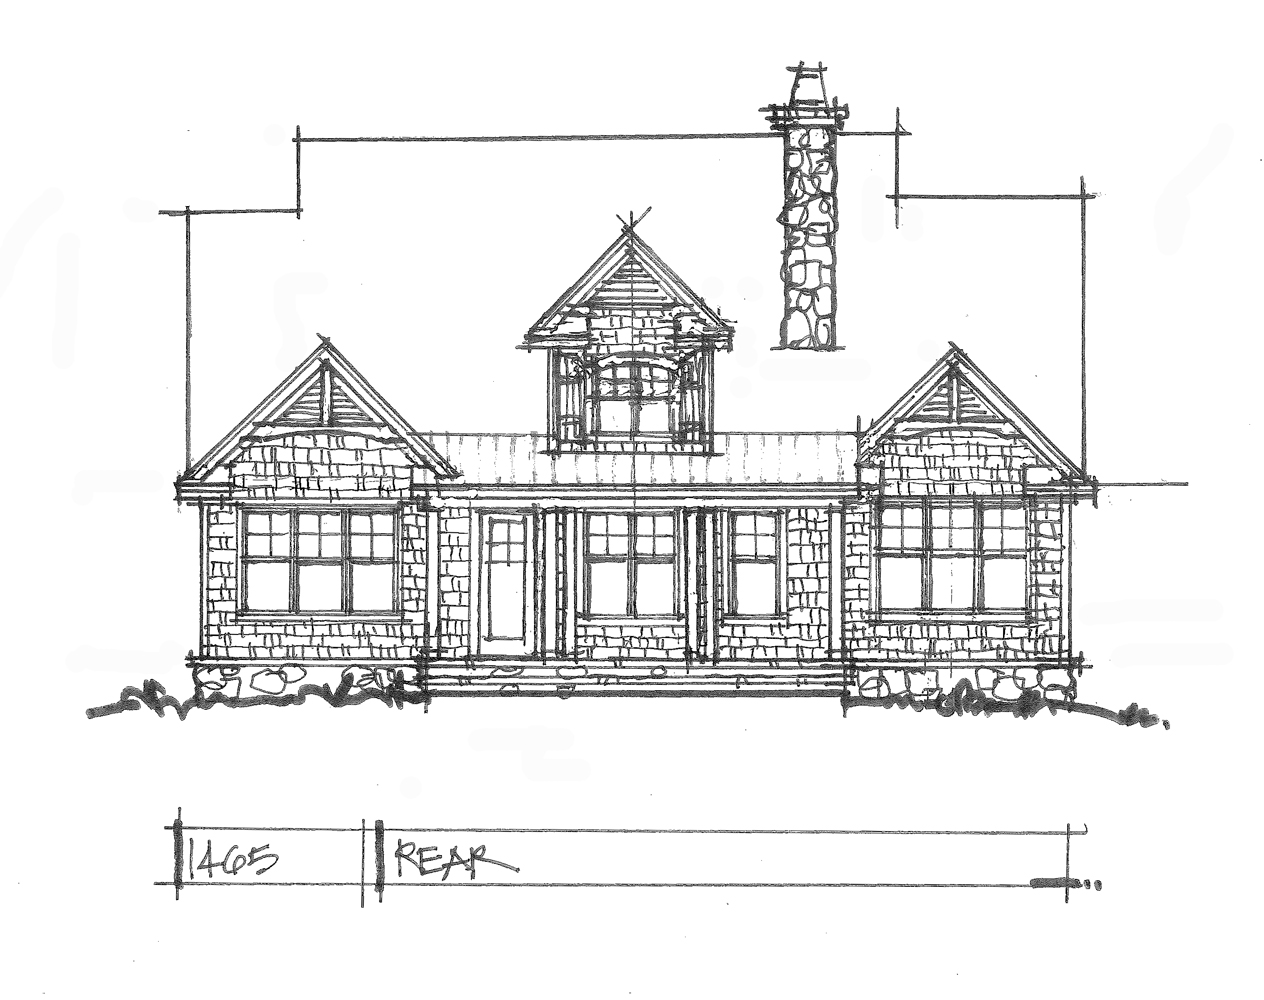 Check out the rear elevation of house plan 1465.